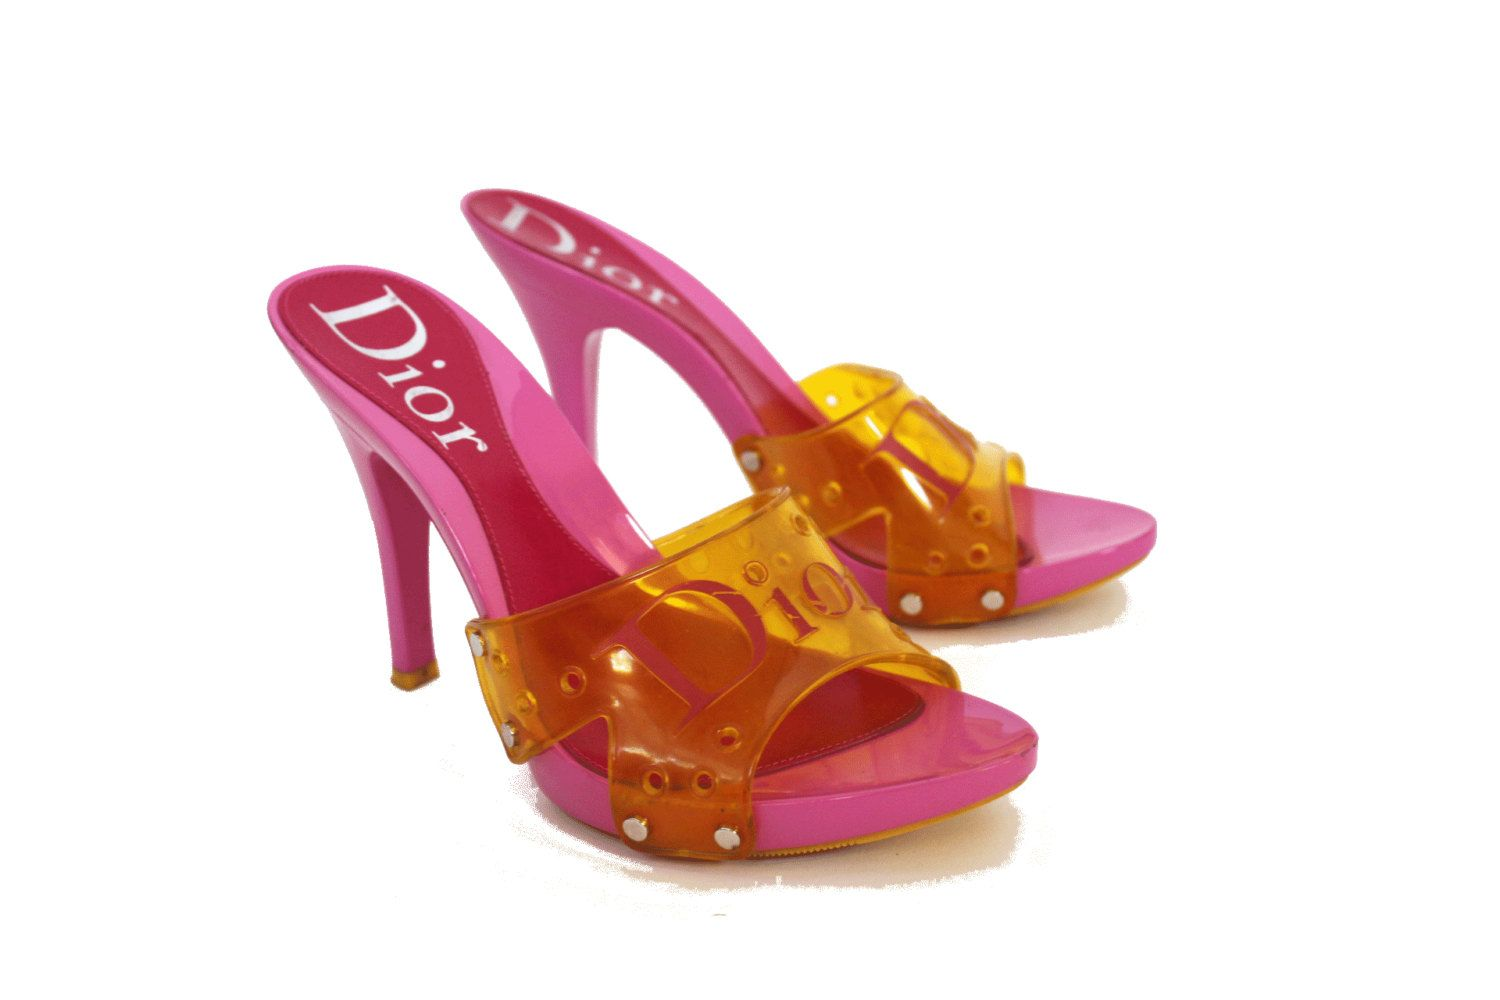 0ef6e3fb8f1 Vintage Dior heels 90 s pink and yellow clear plastic mules CD Christian  Dior -